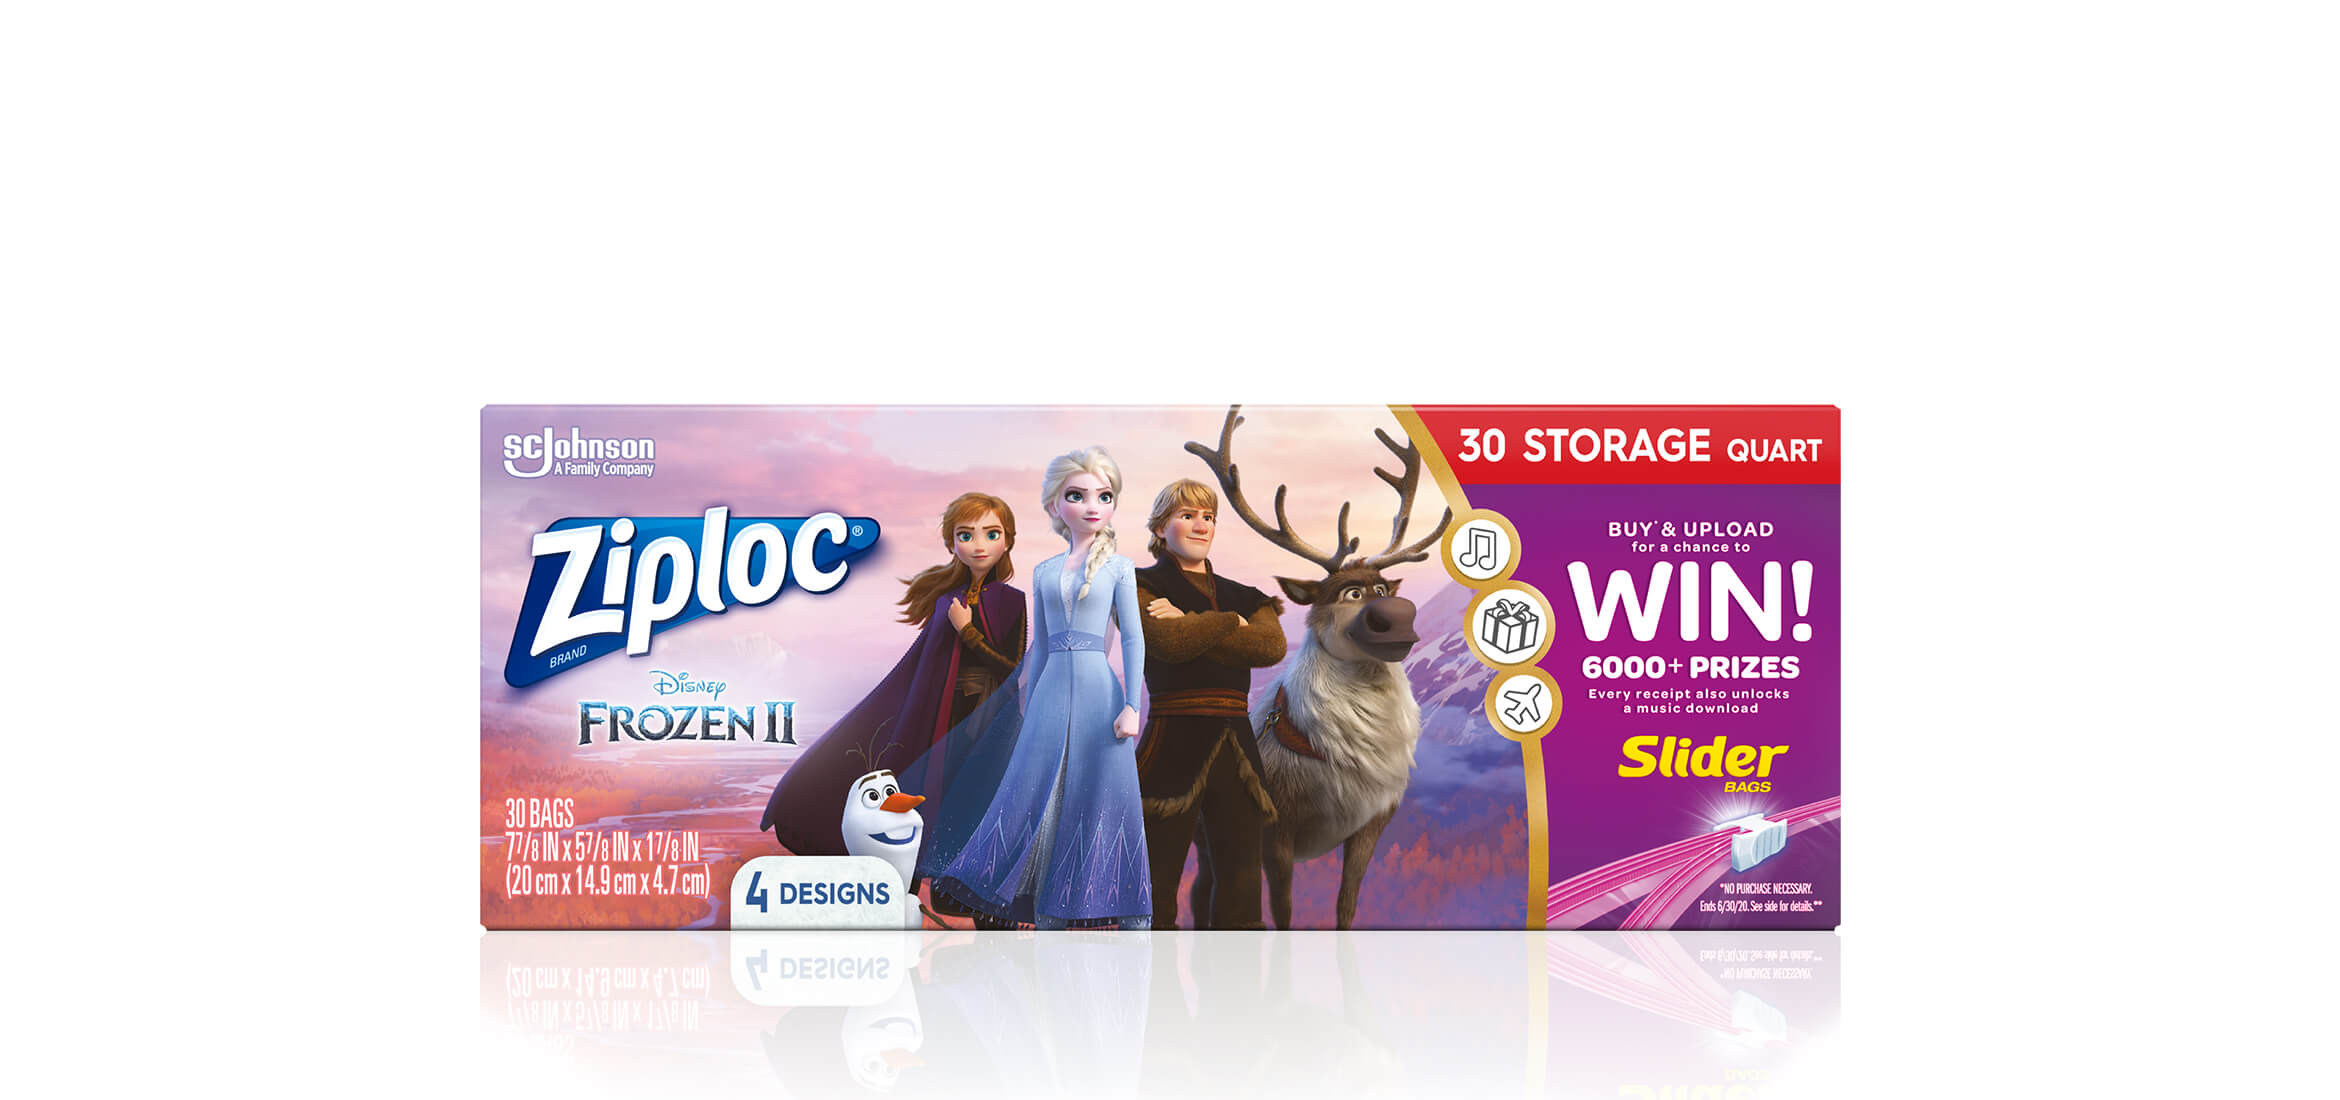 Frozen_30storage_Quart_2X